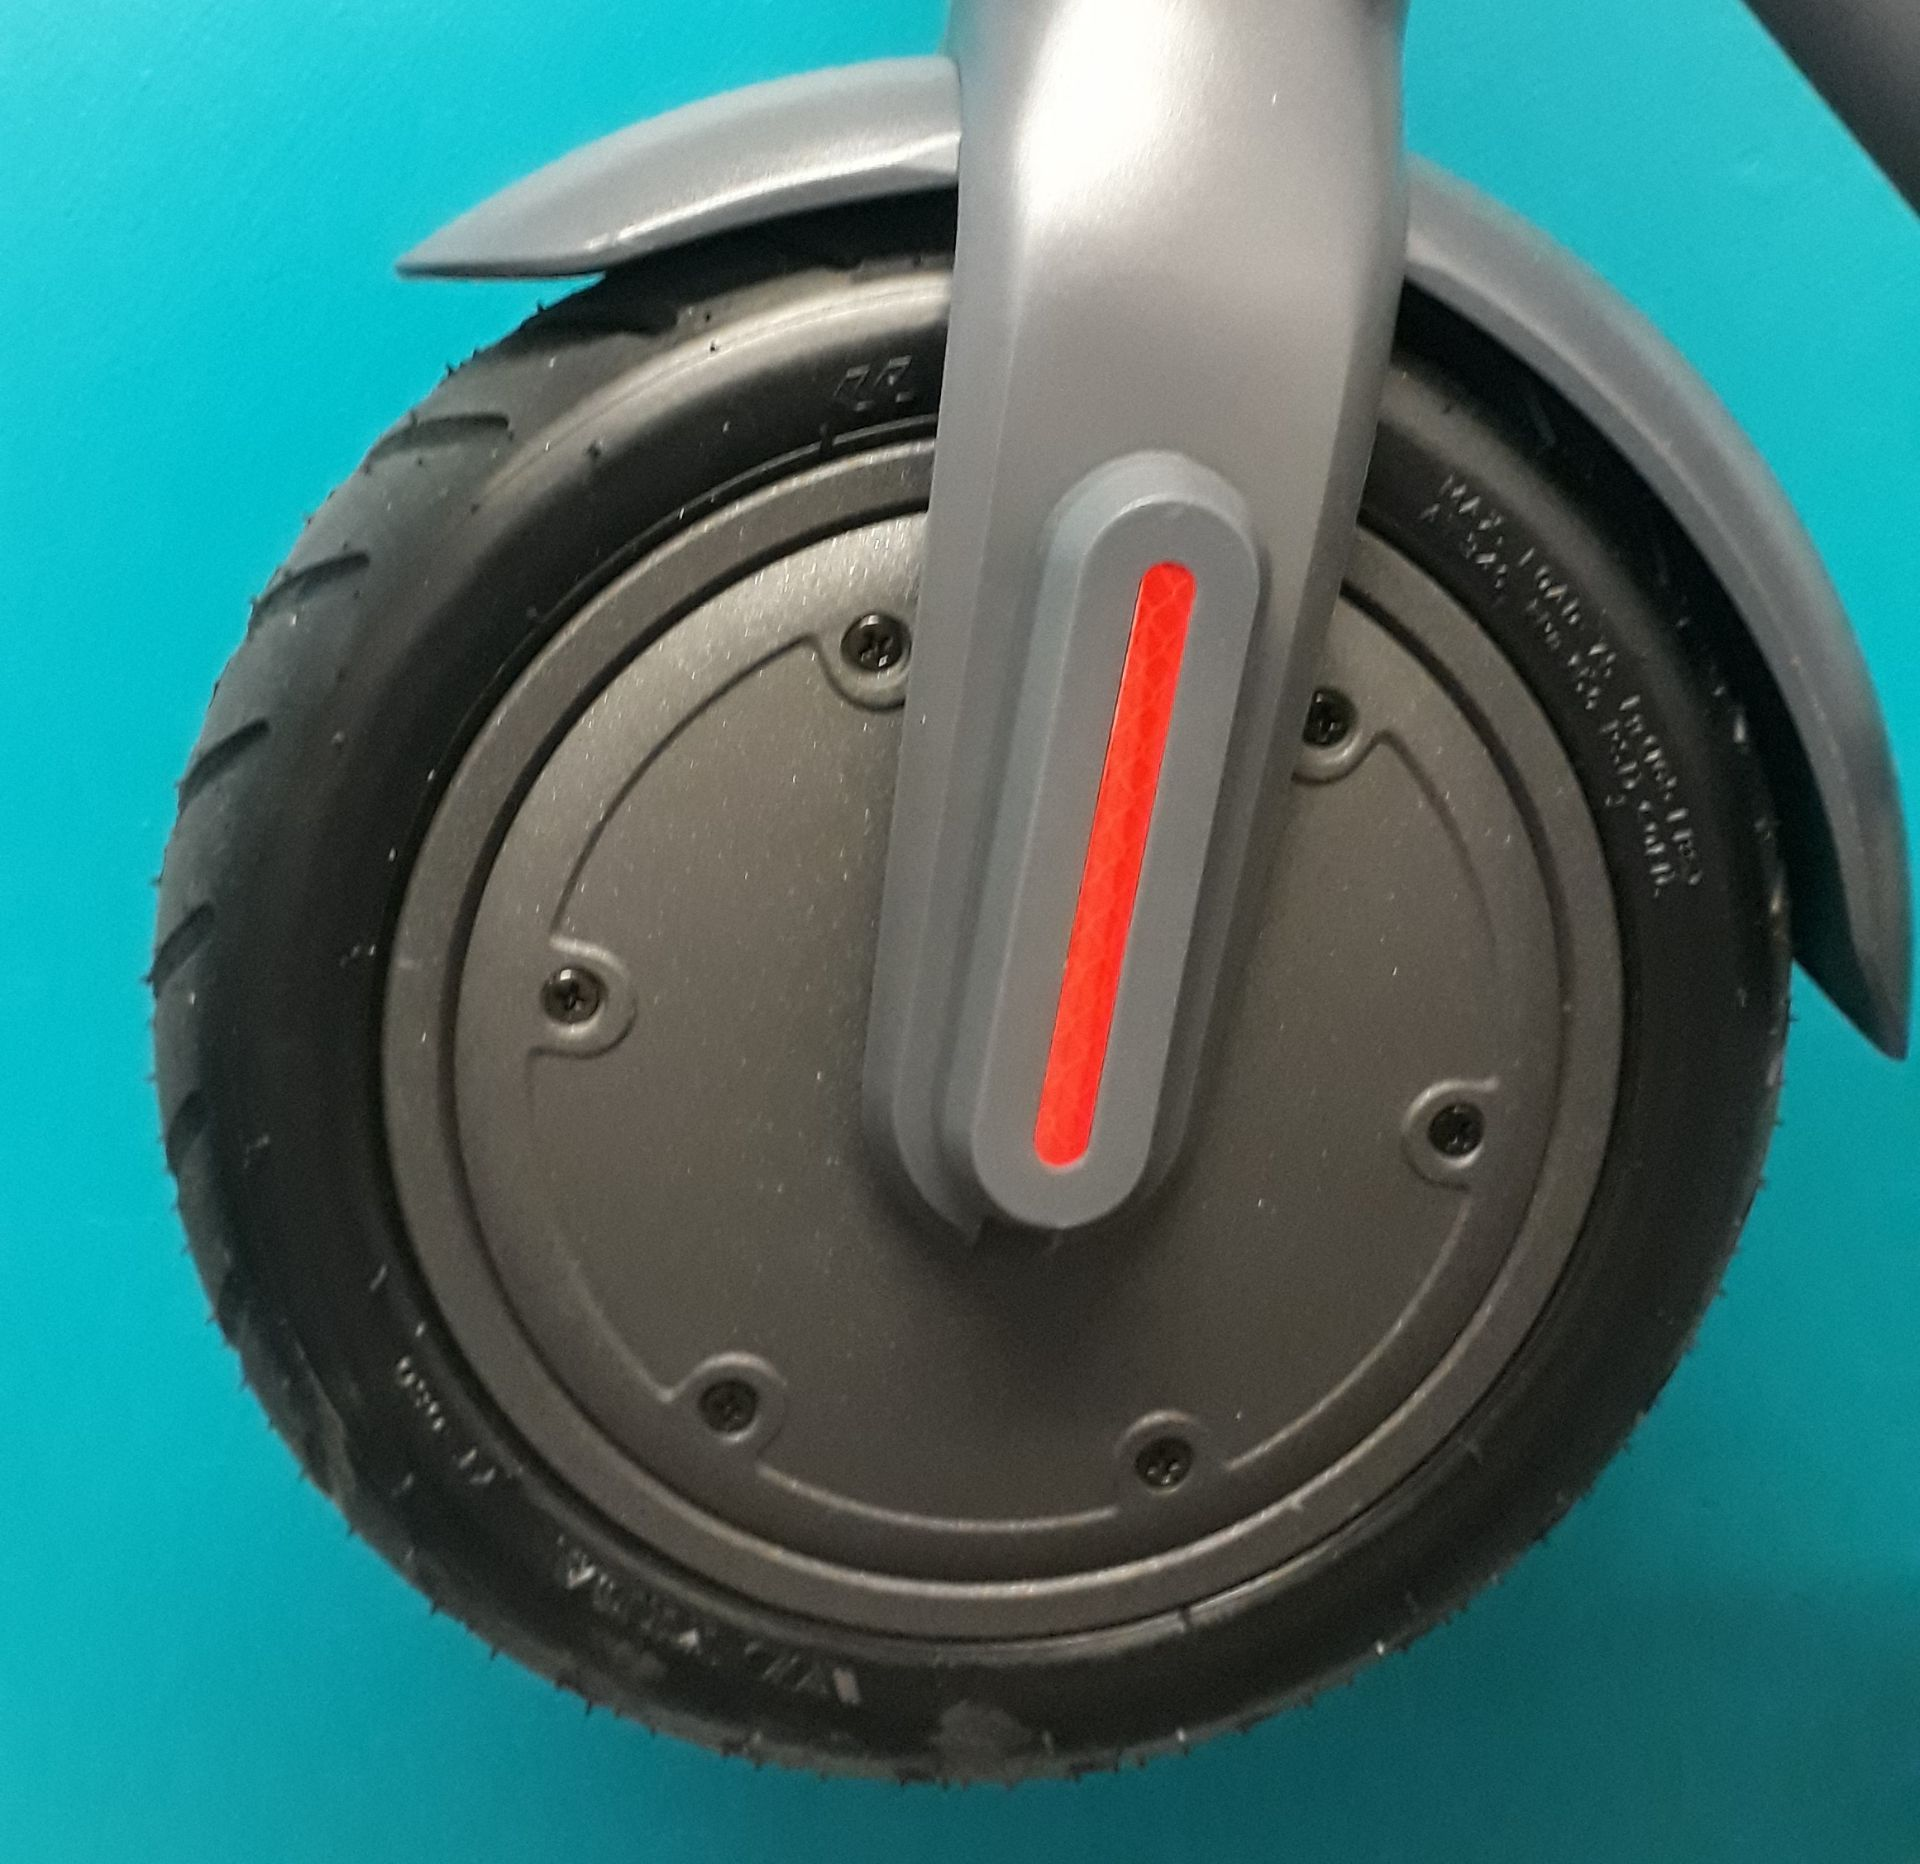 + VAT Brand New Hush Foldable Electric Scooter - Three Speeds - Max Speed 25km/h - ABS Disc - Image 3 of 4